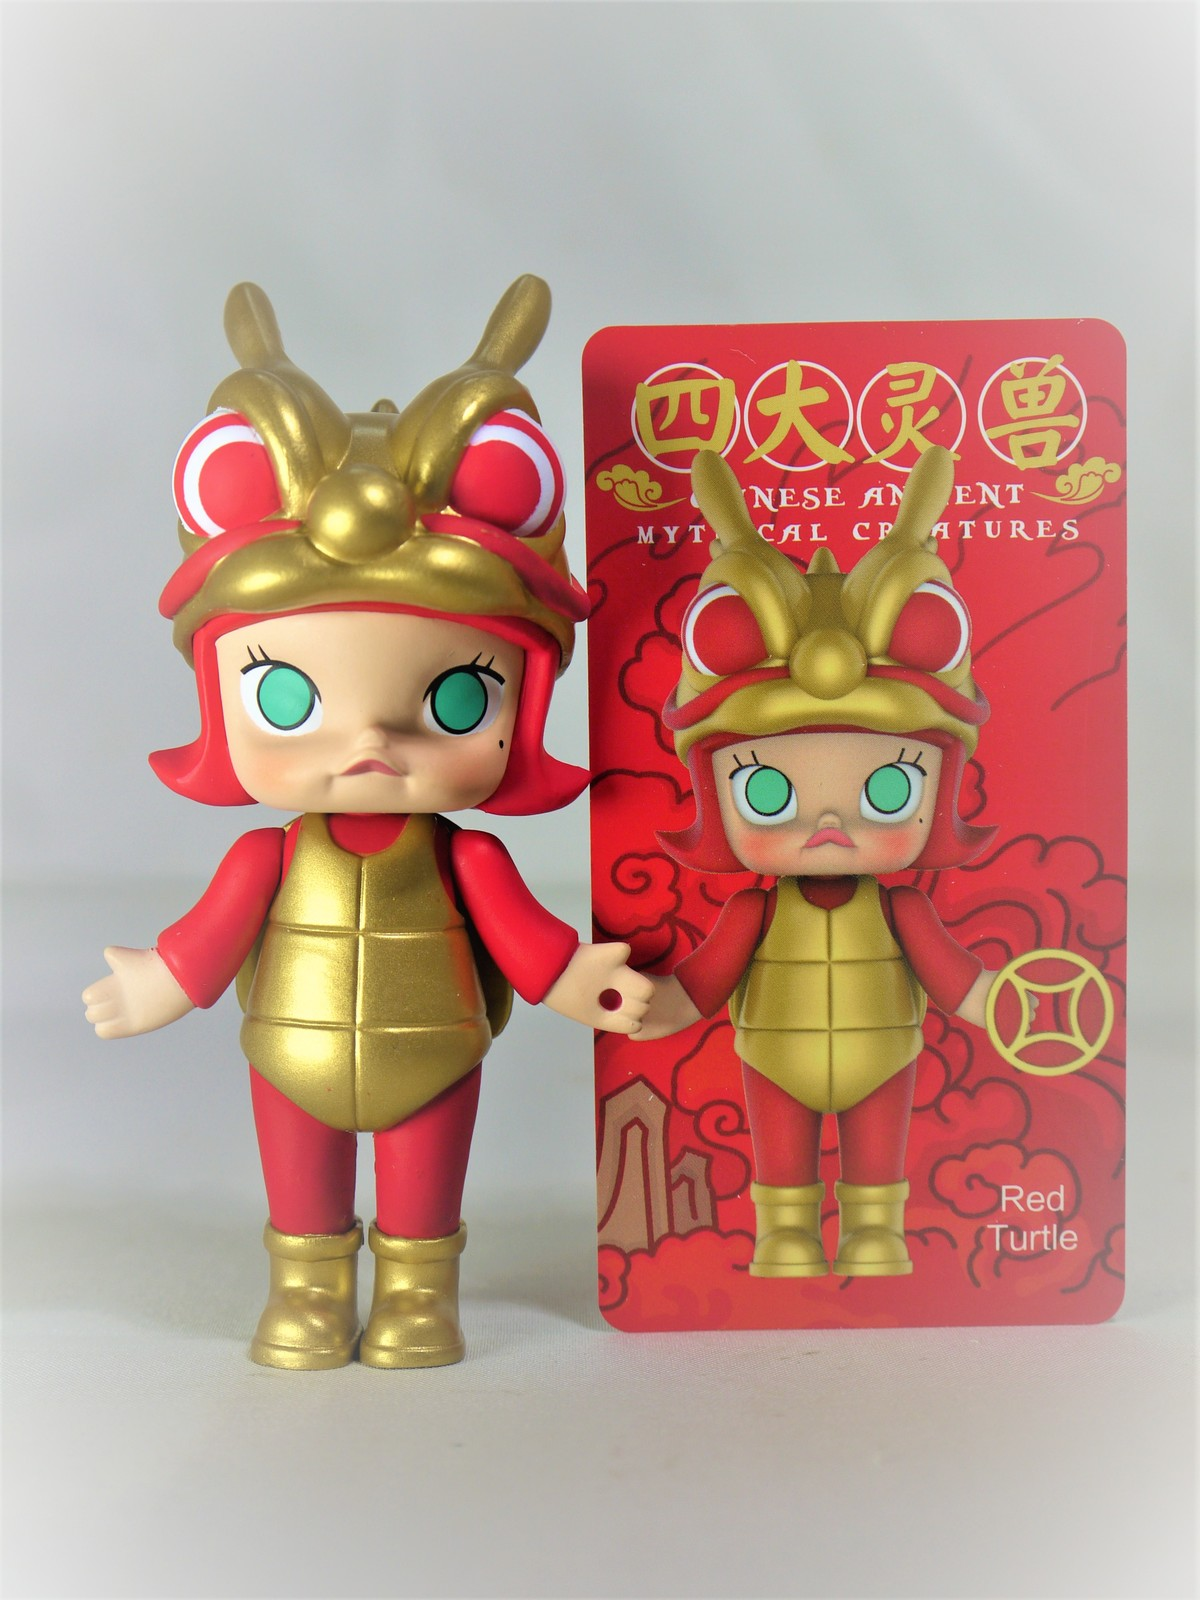 POP MART Kennyswork MOLLY CHINESE ANCIENT MYTHICAL CREATURES Red Turtle